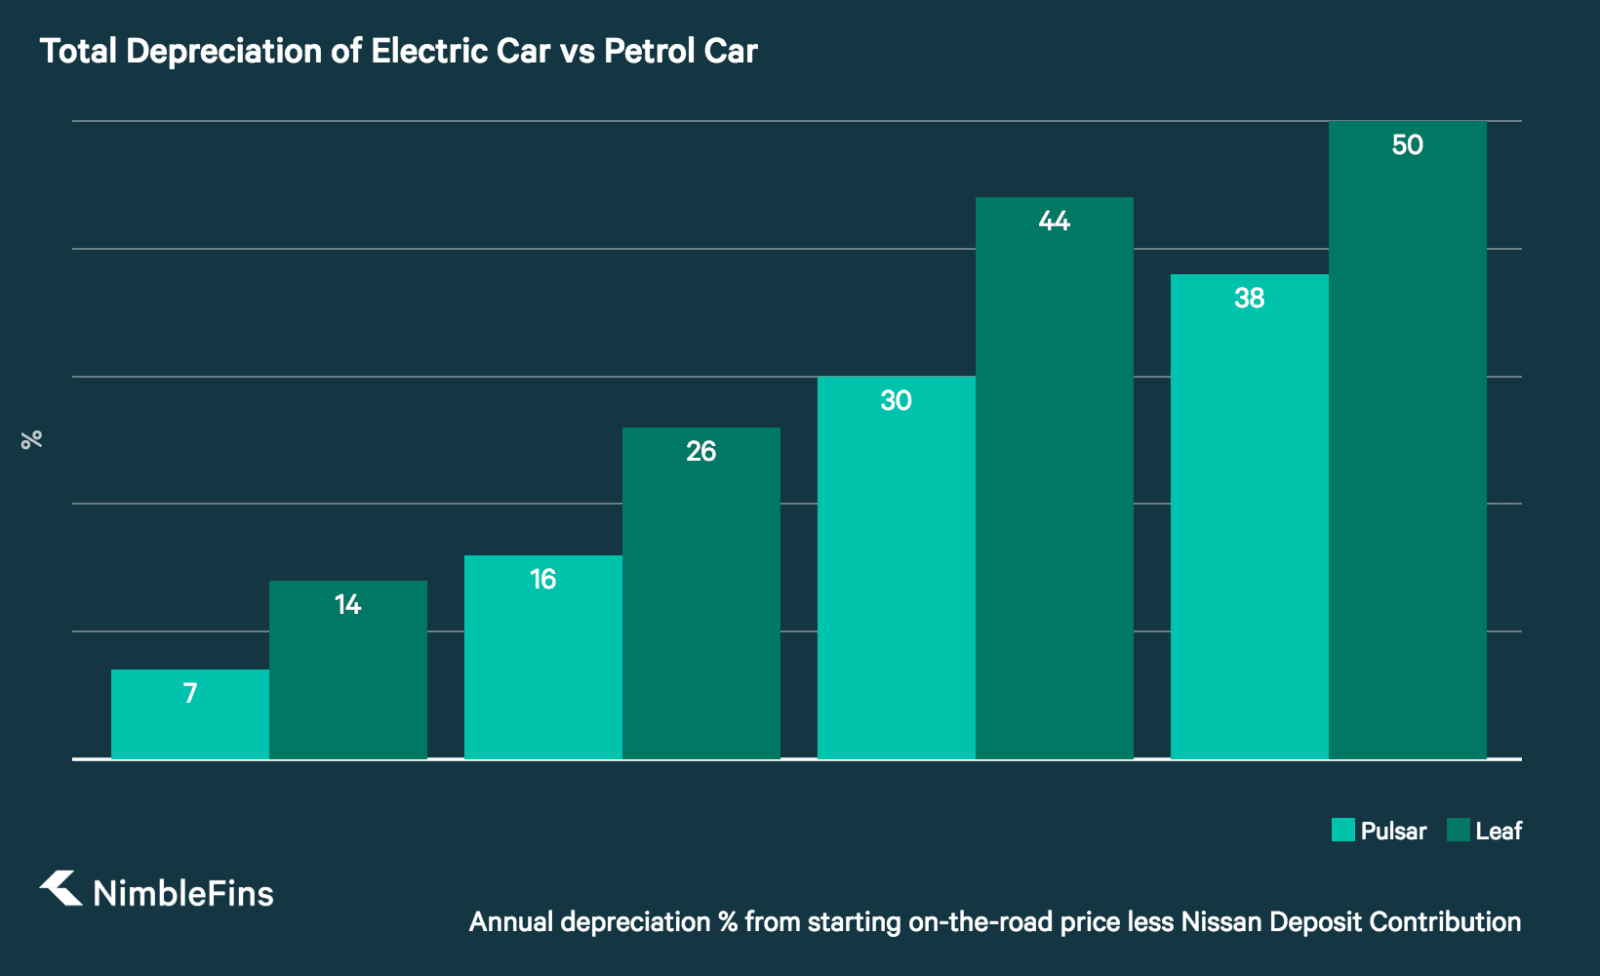 column chart showing total depreciation of electric car Nissan Leaf vs ICE Nissan Pulsar after 1, 2, 3 and 4 years